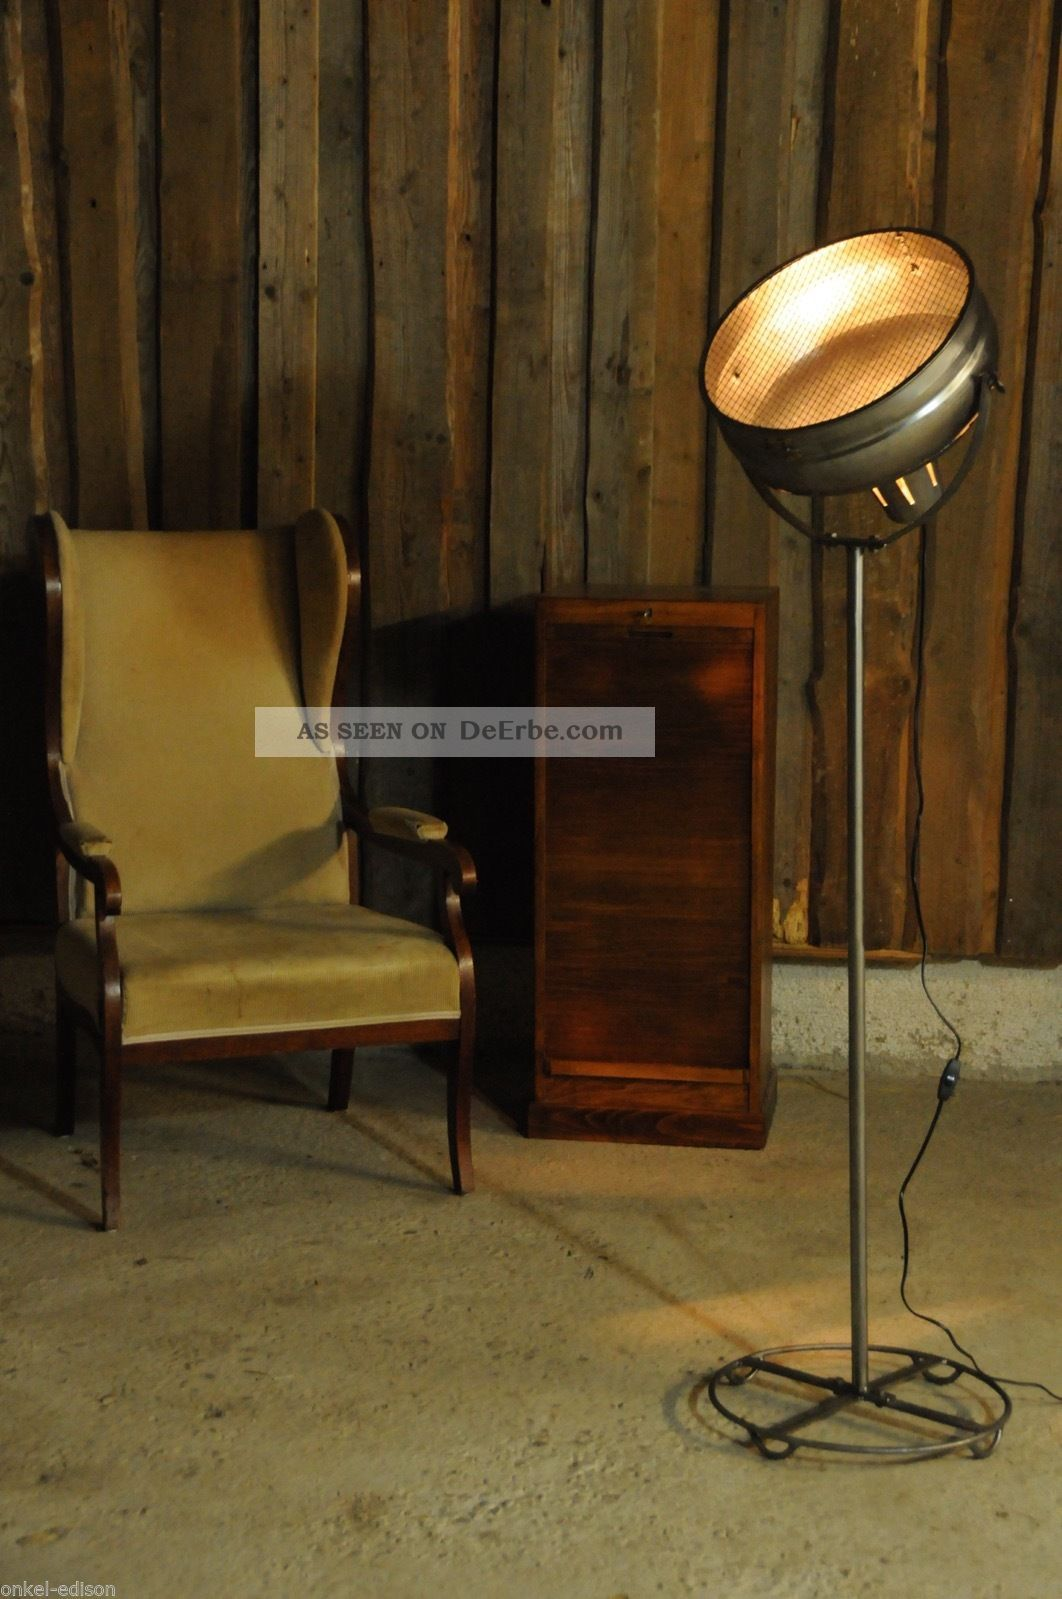 vintage scheinwerfer stehlampe retro industriedesign manufaktur industrial. Black Bedroom Furniture Sets. Home Design Ideas